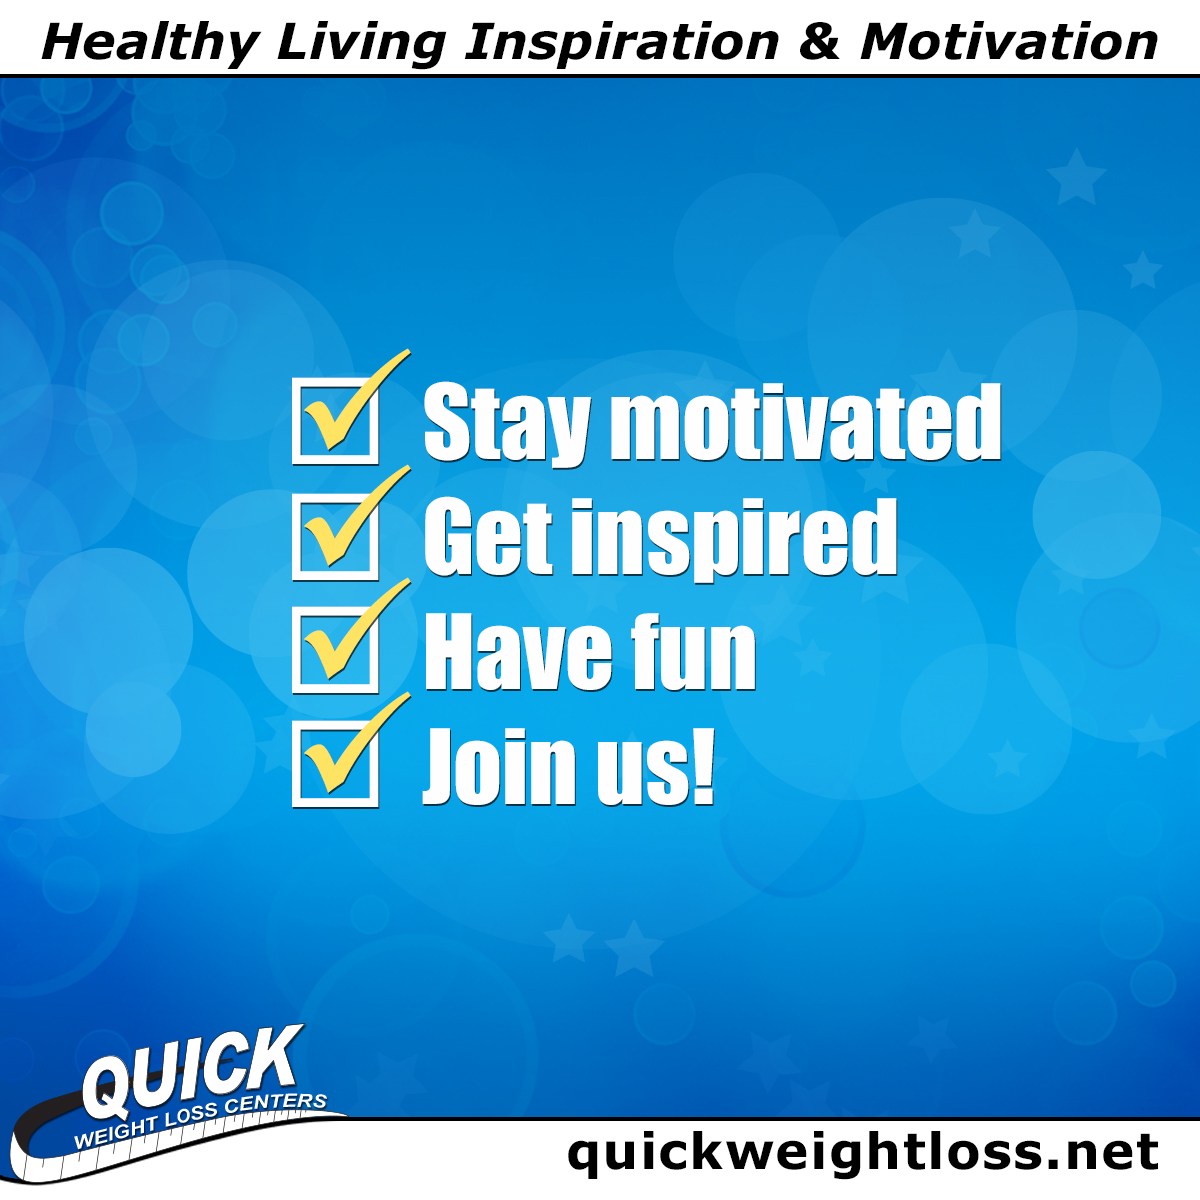 Quick Weight Loss Centers: Quick Weight Loss Centers: Stay ...